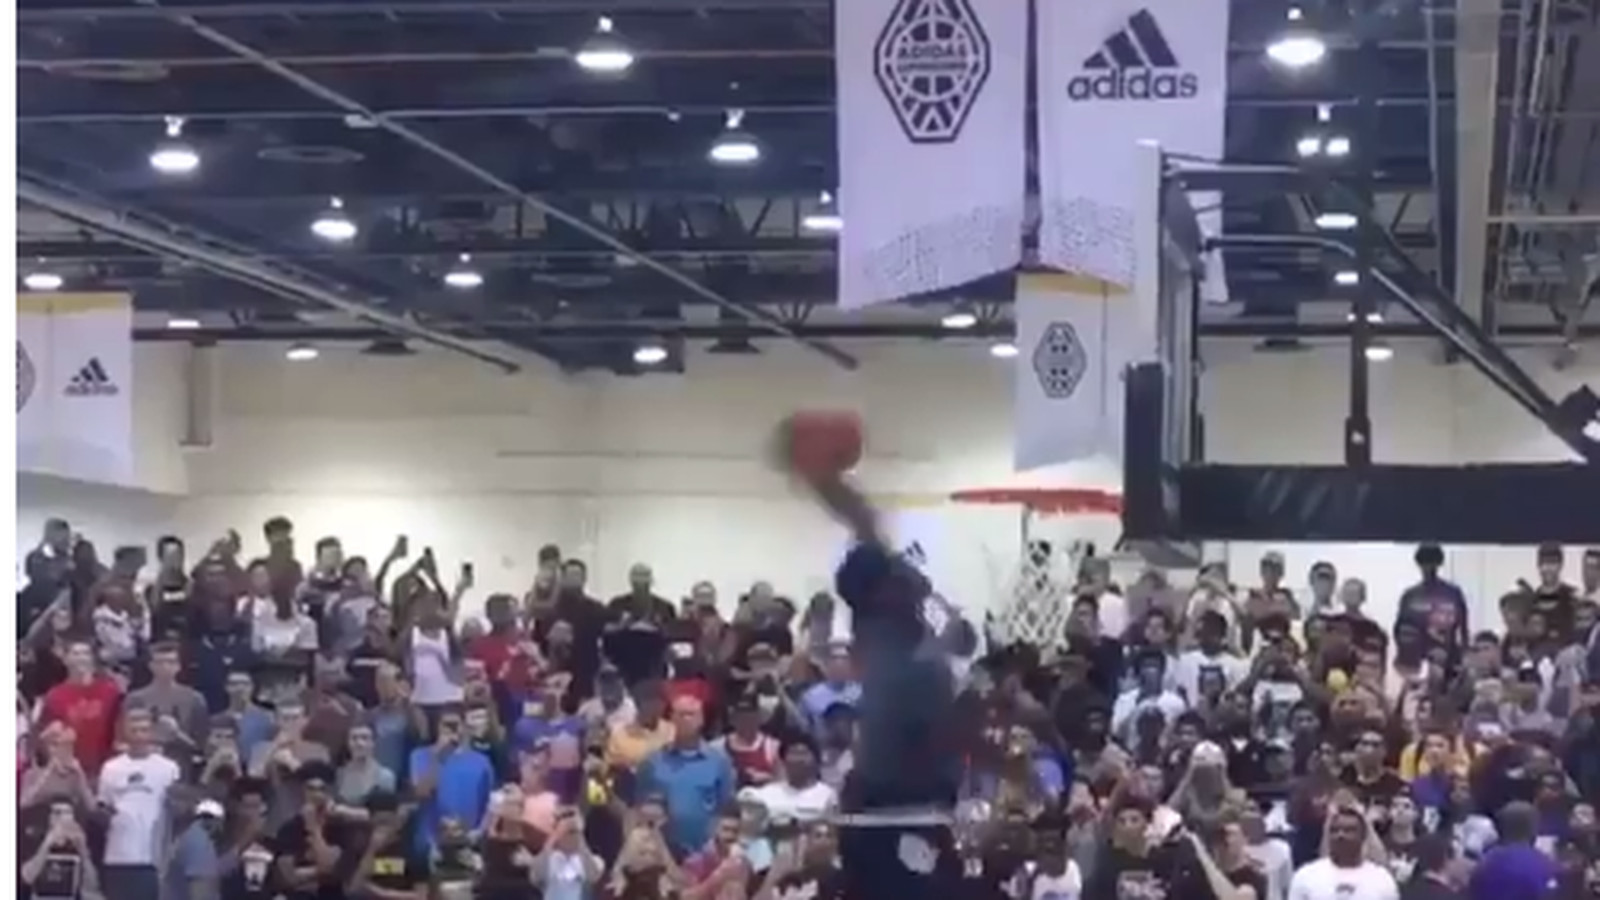 LaMelo Ball vs. Zion Williamson drew cops, NBA stars and an oversold gym